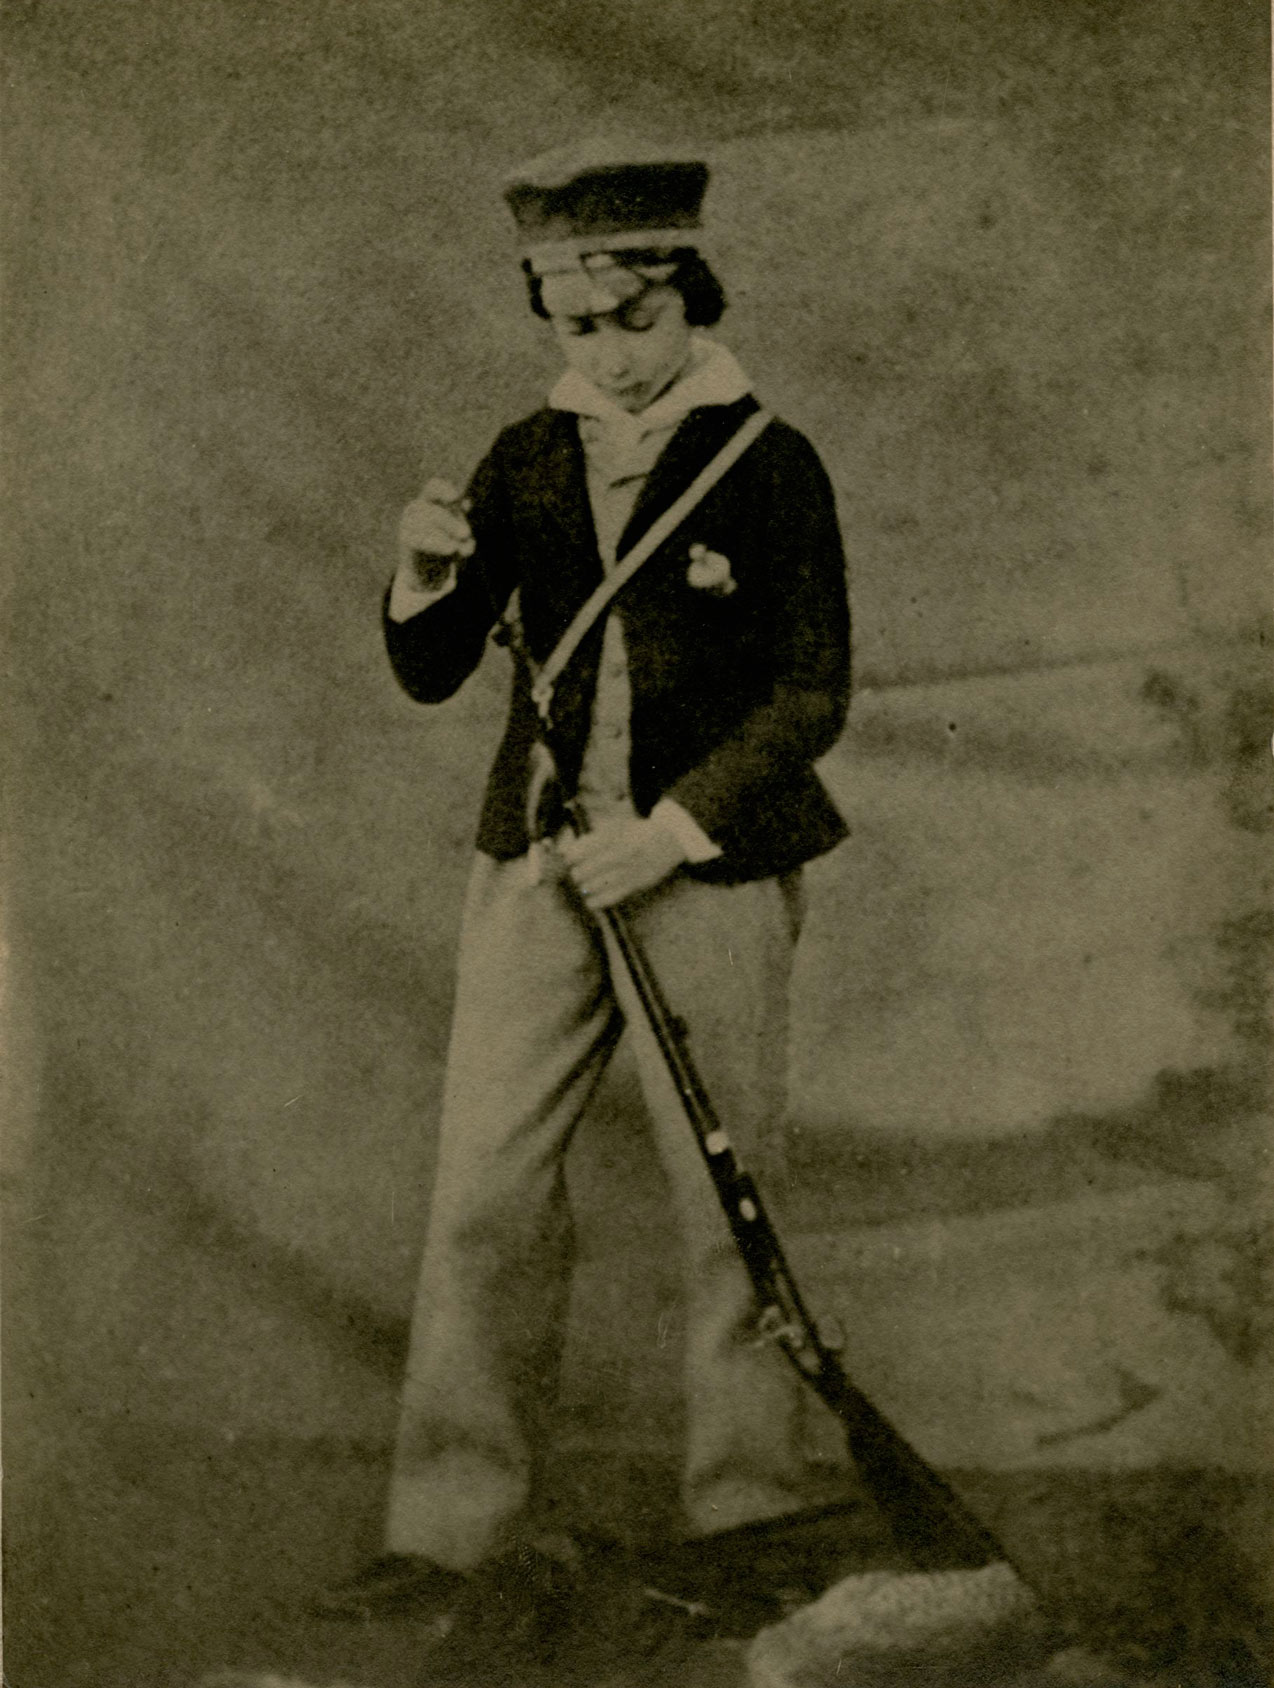 Prince-of-Wales-with-1st-gun